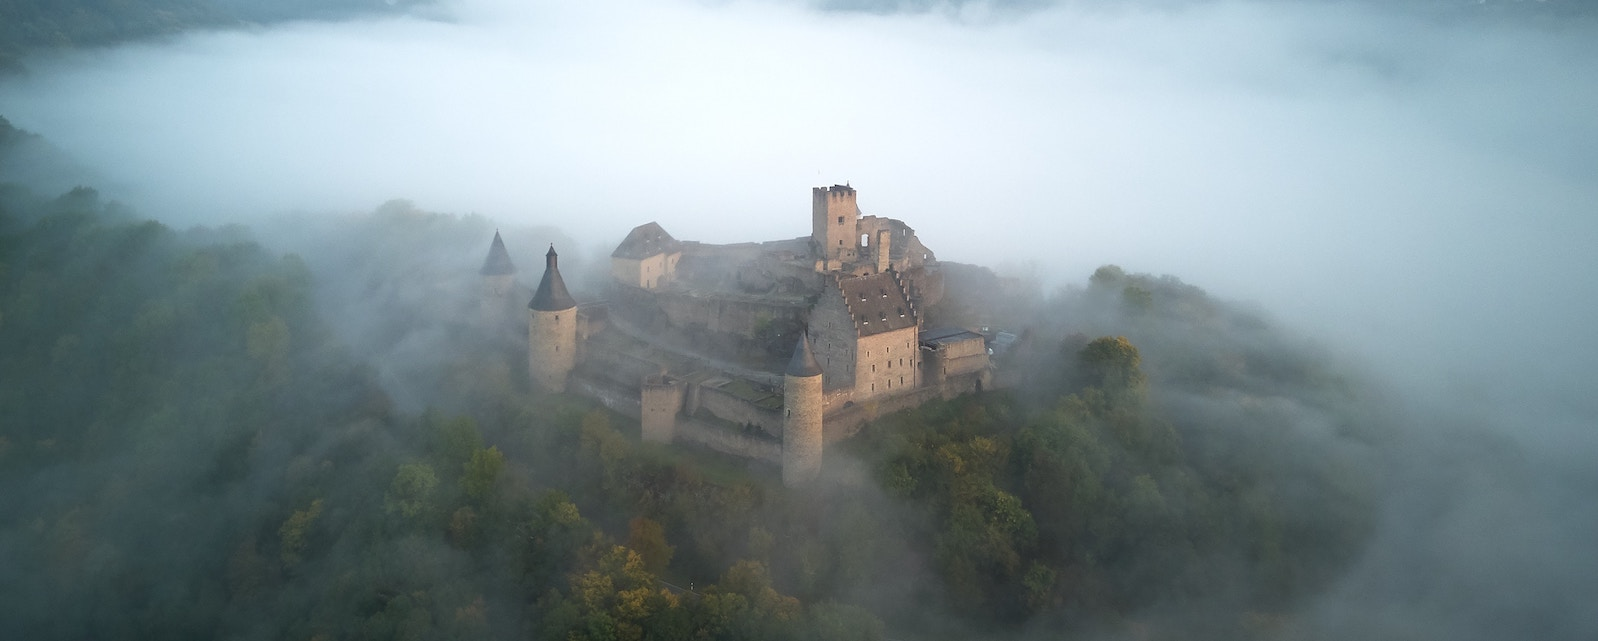 Castle in the mist - Love Beyond Words